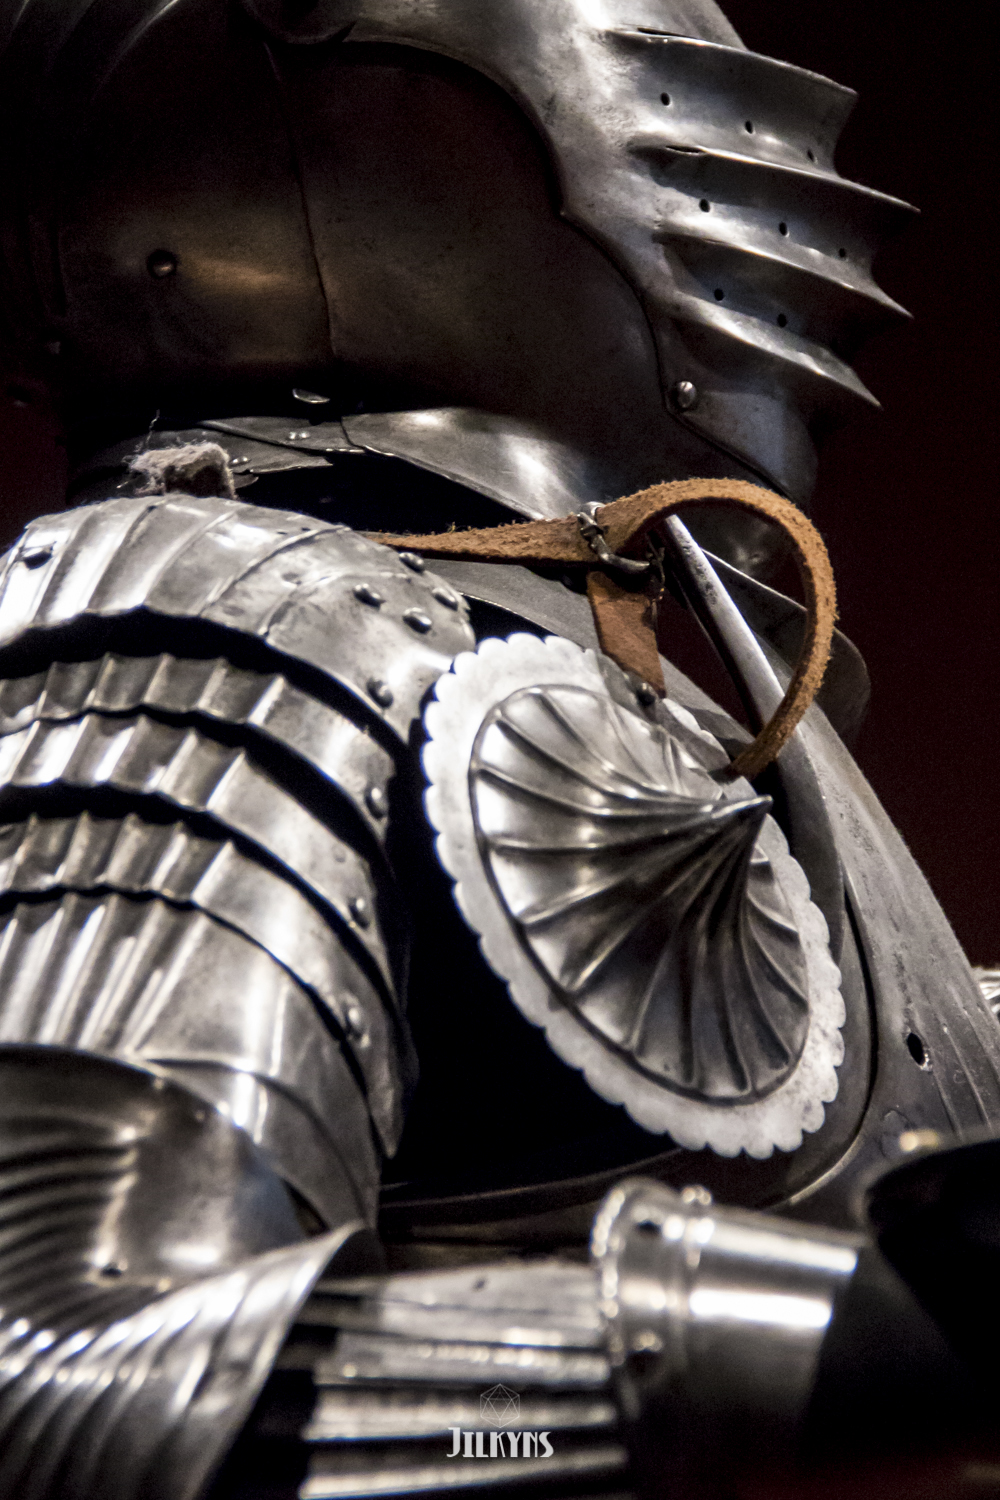 Armor The Field Museum Chicago photo by Jilkyns